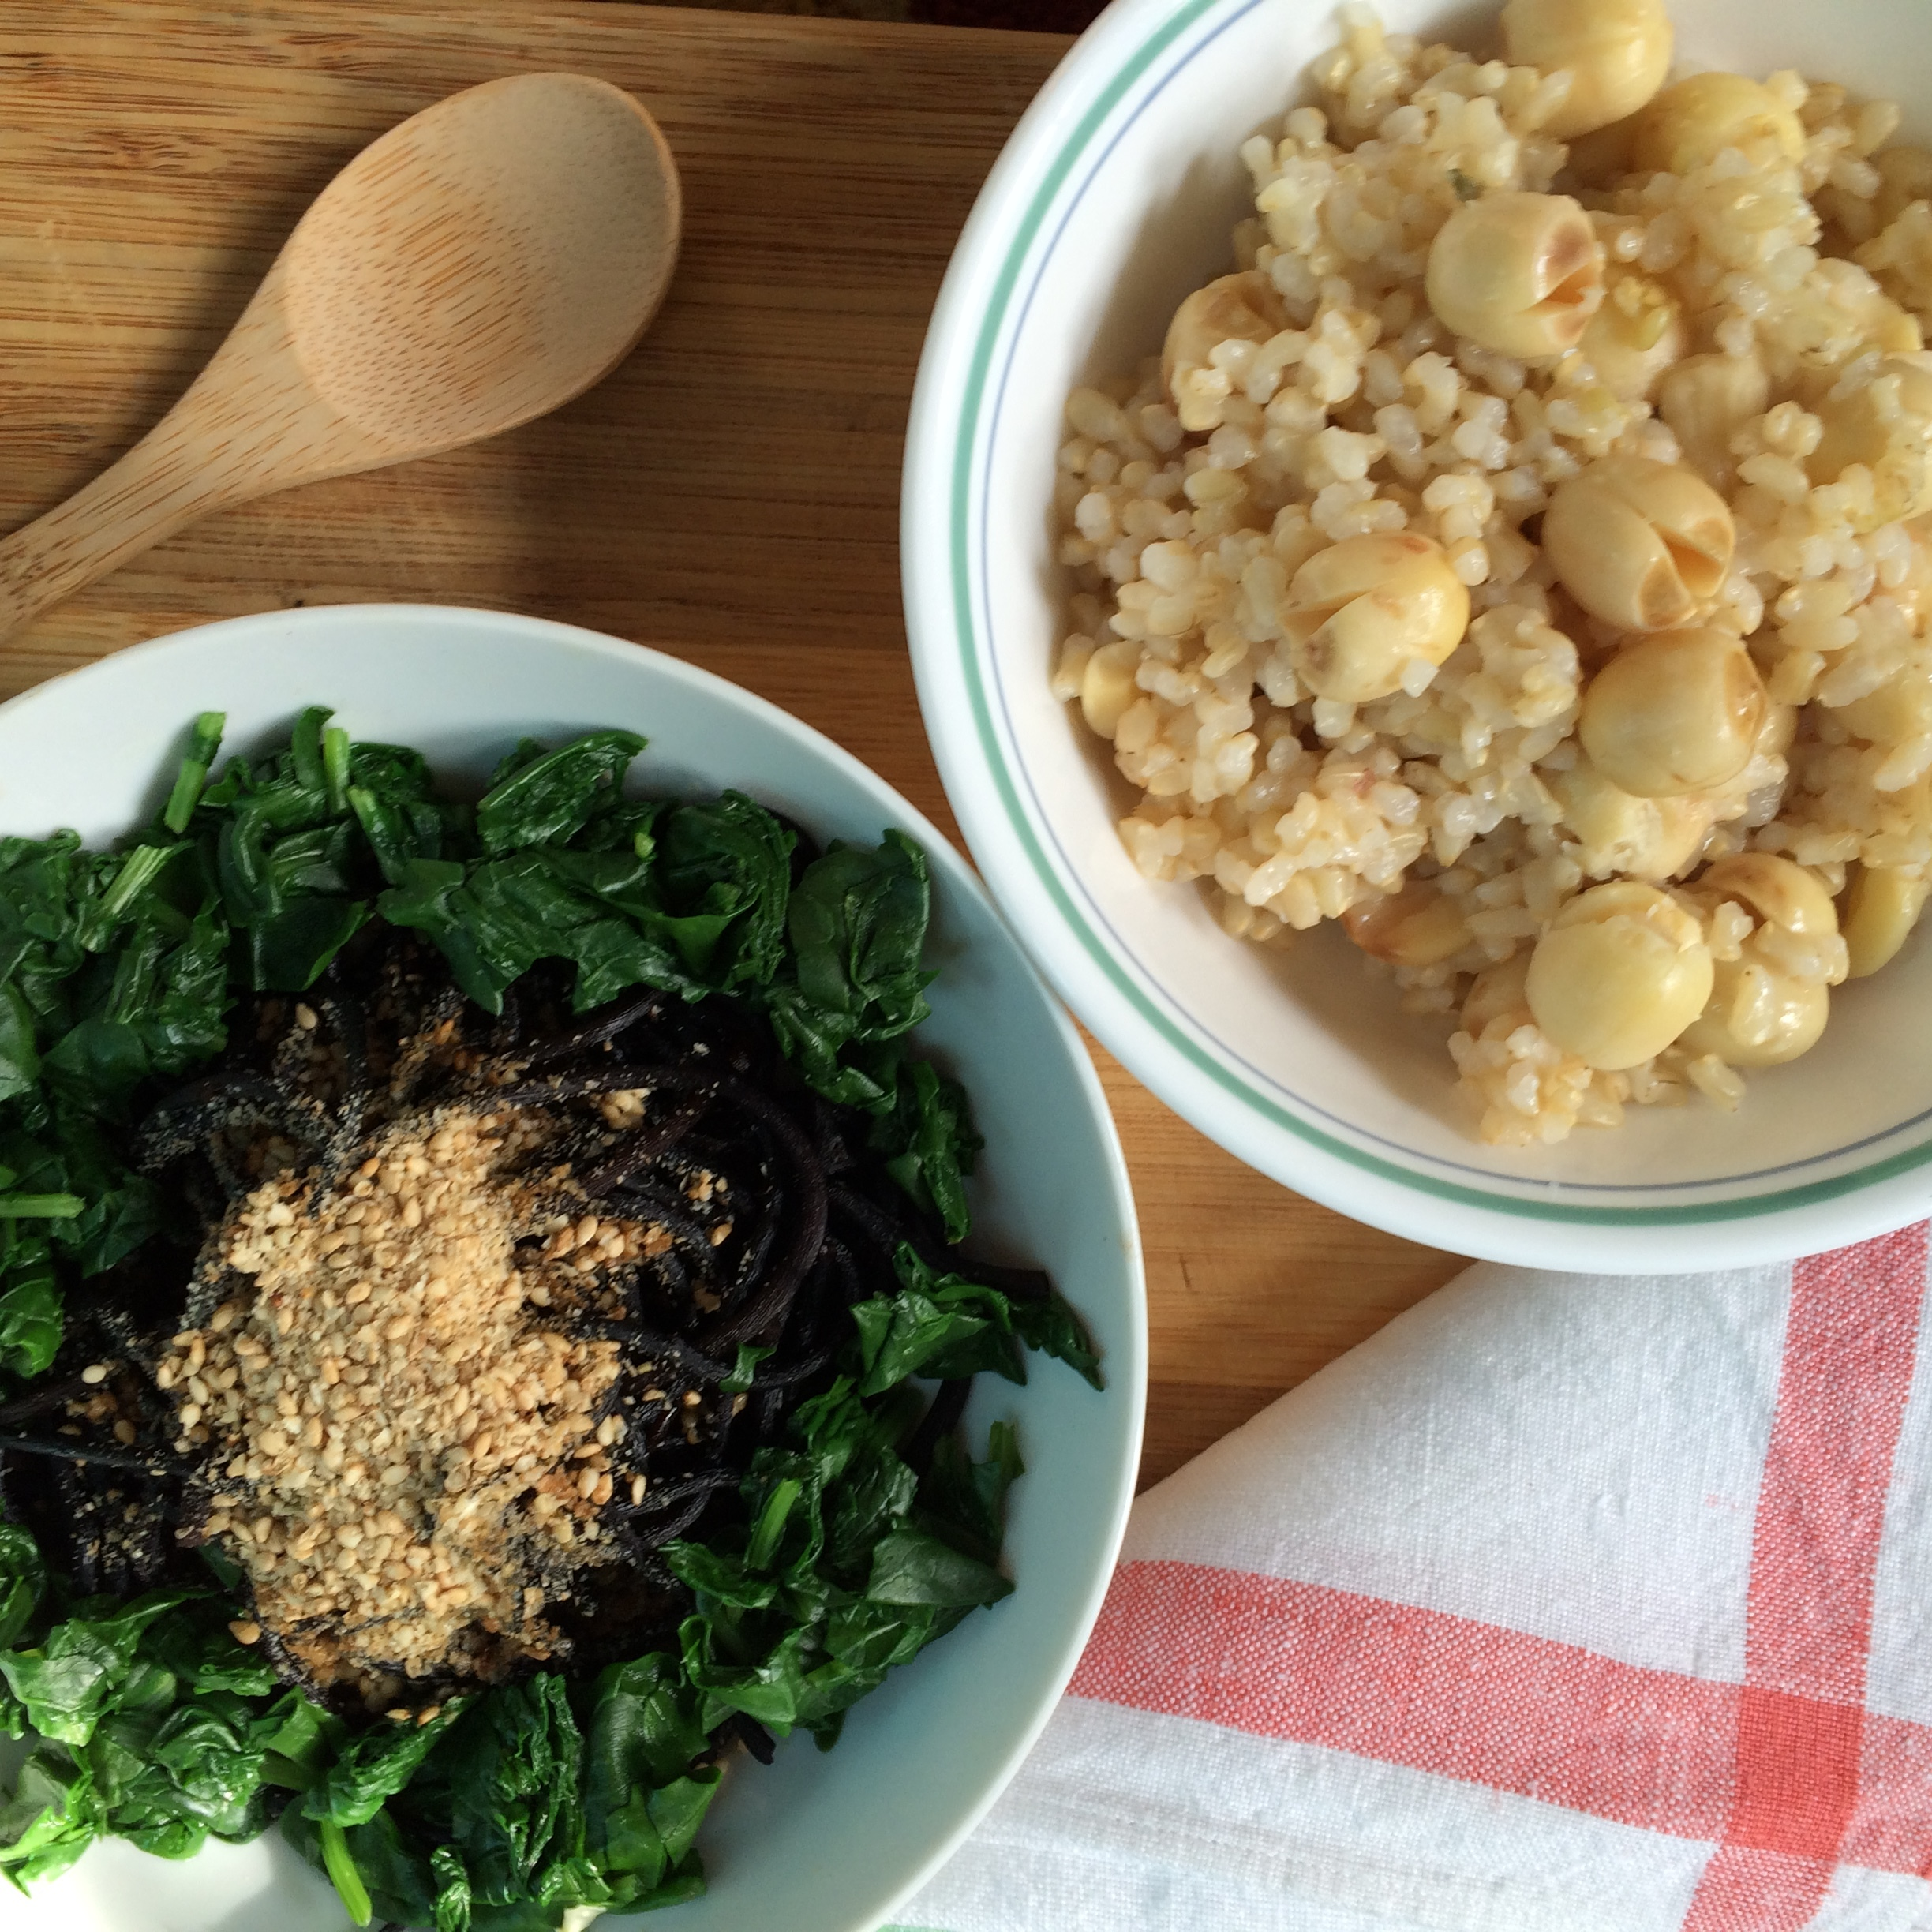 Hijiki Sea Vegetable Salad with Kale and Brown Rice with Lotus Seeds